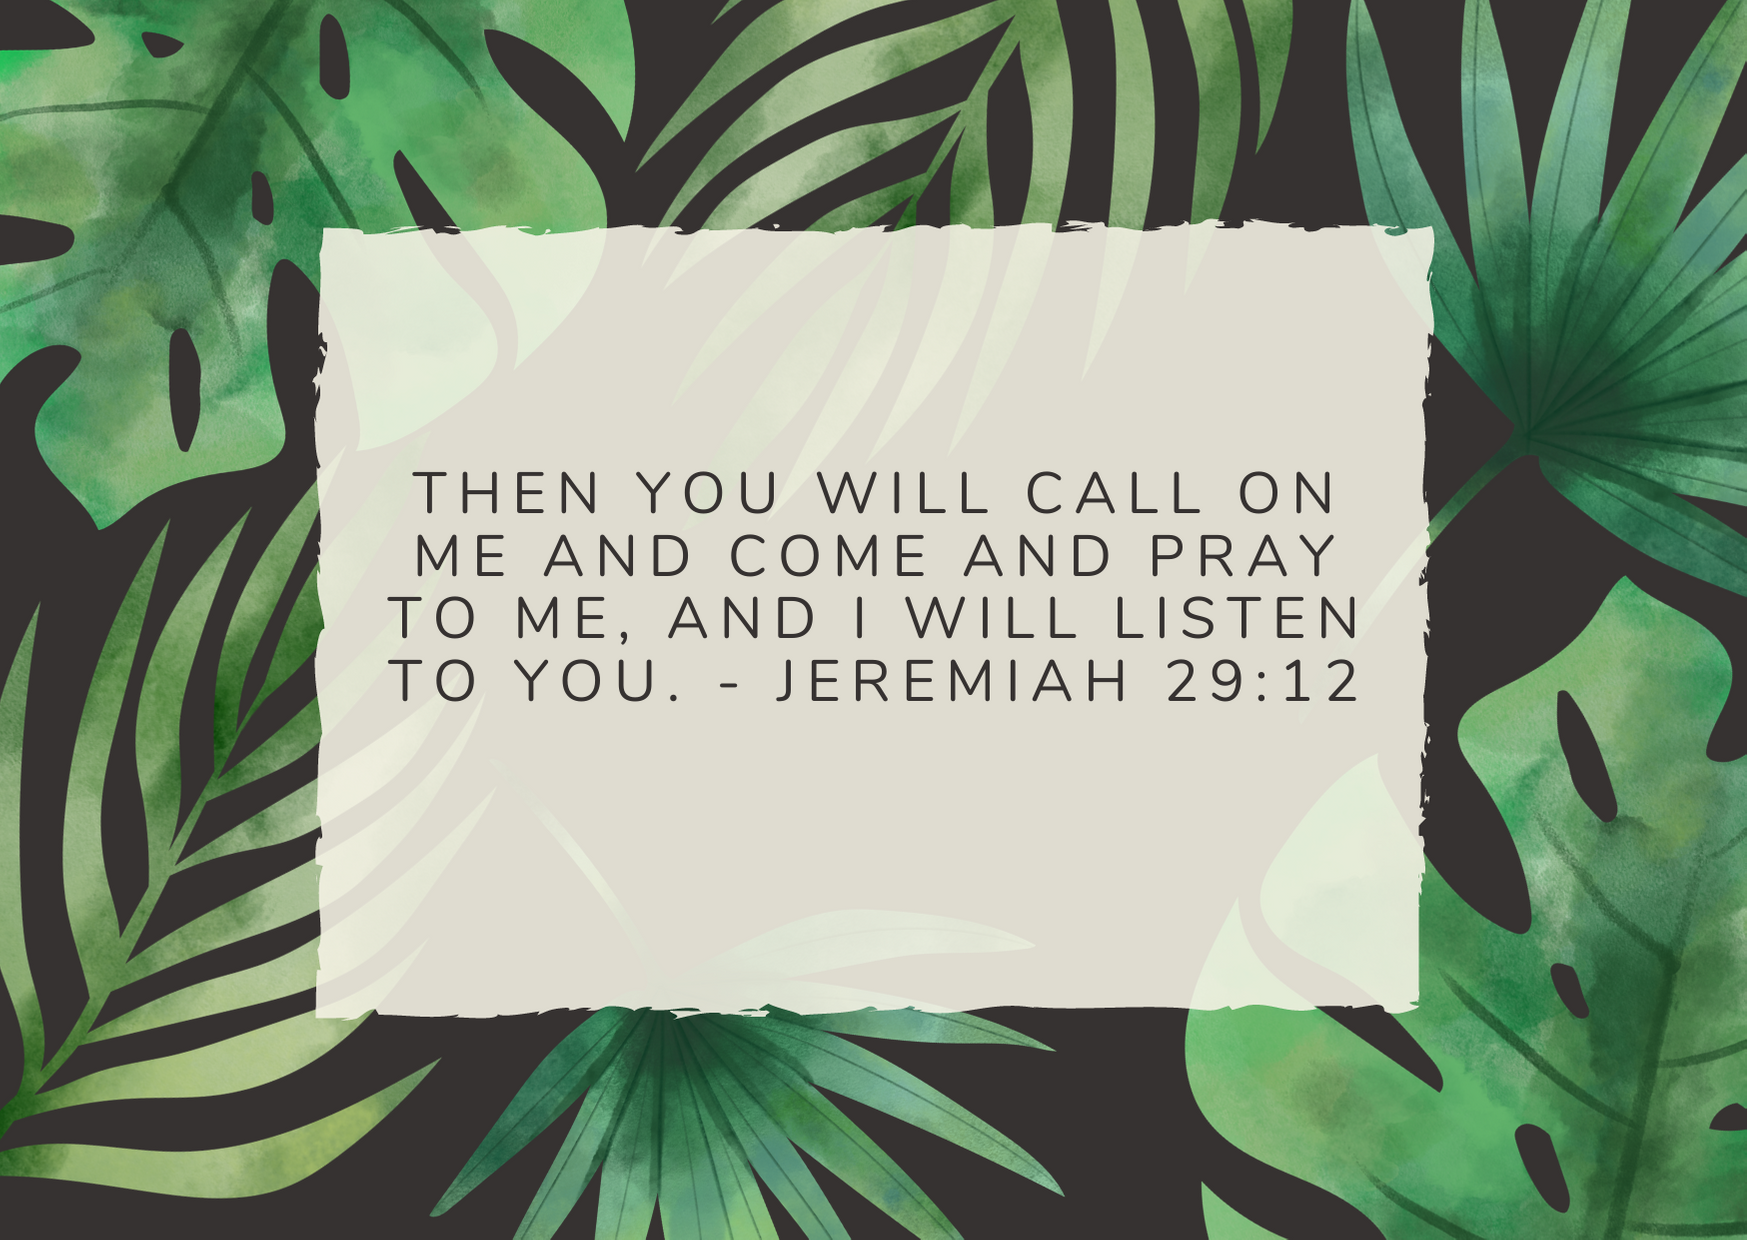 Then you will call on me and come and pray to me, and I will listen to you. - Jeremiah 29:12